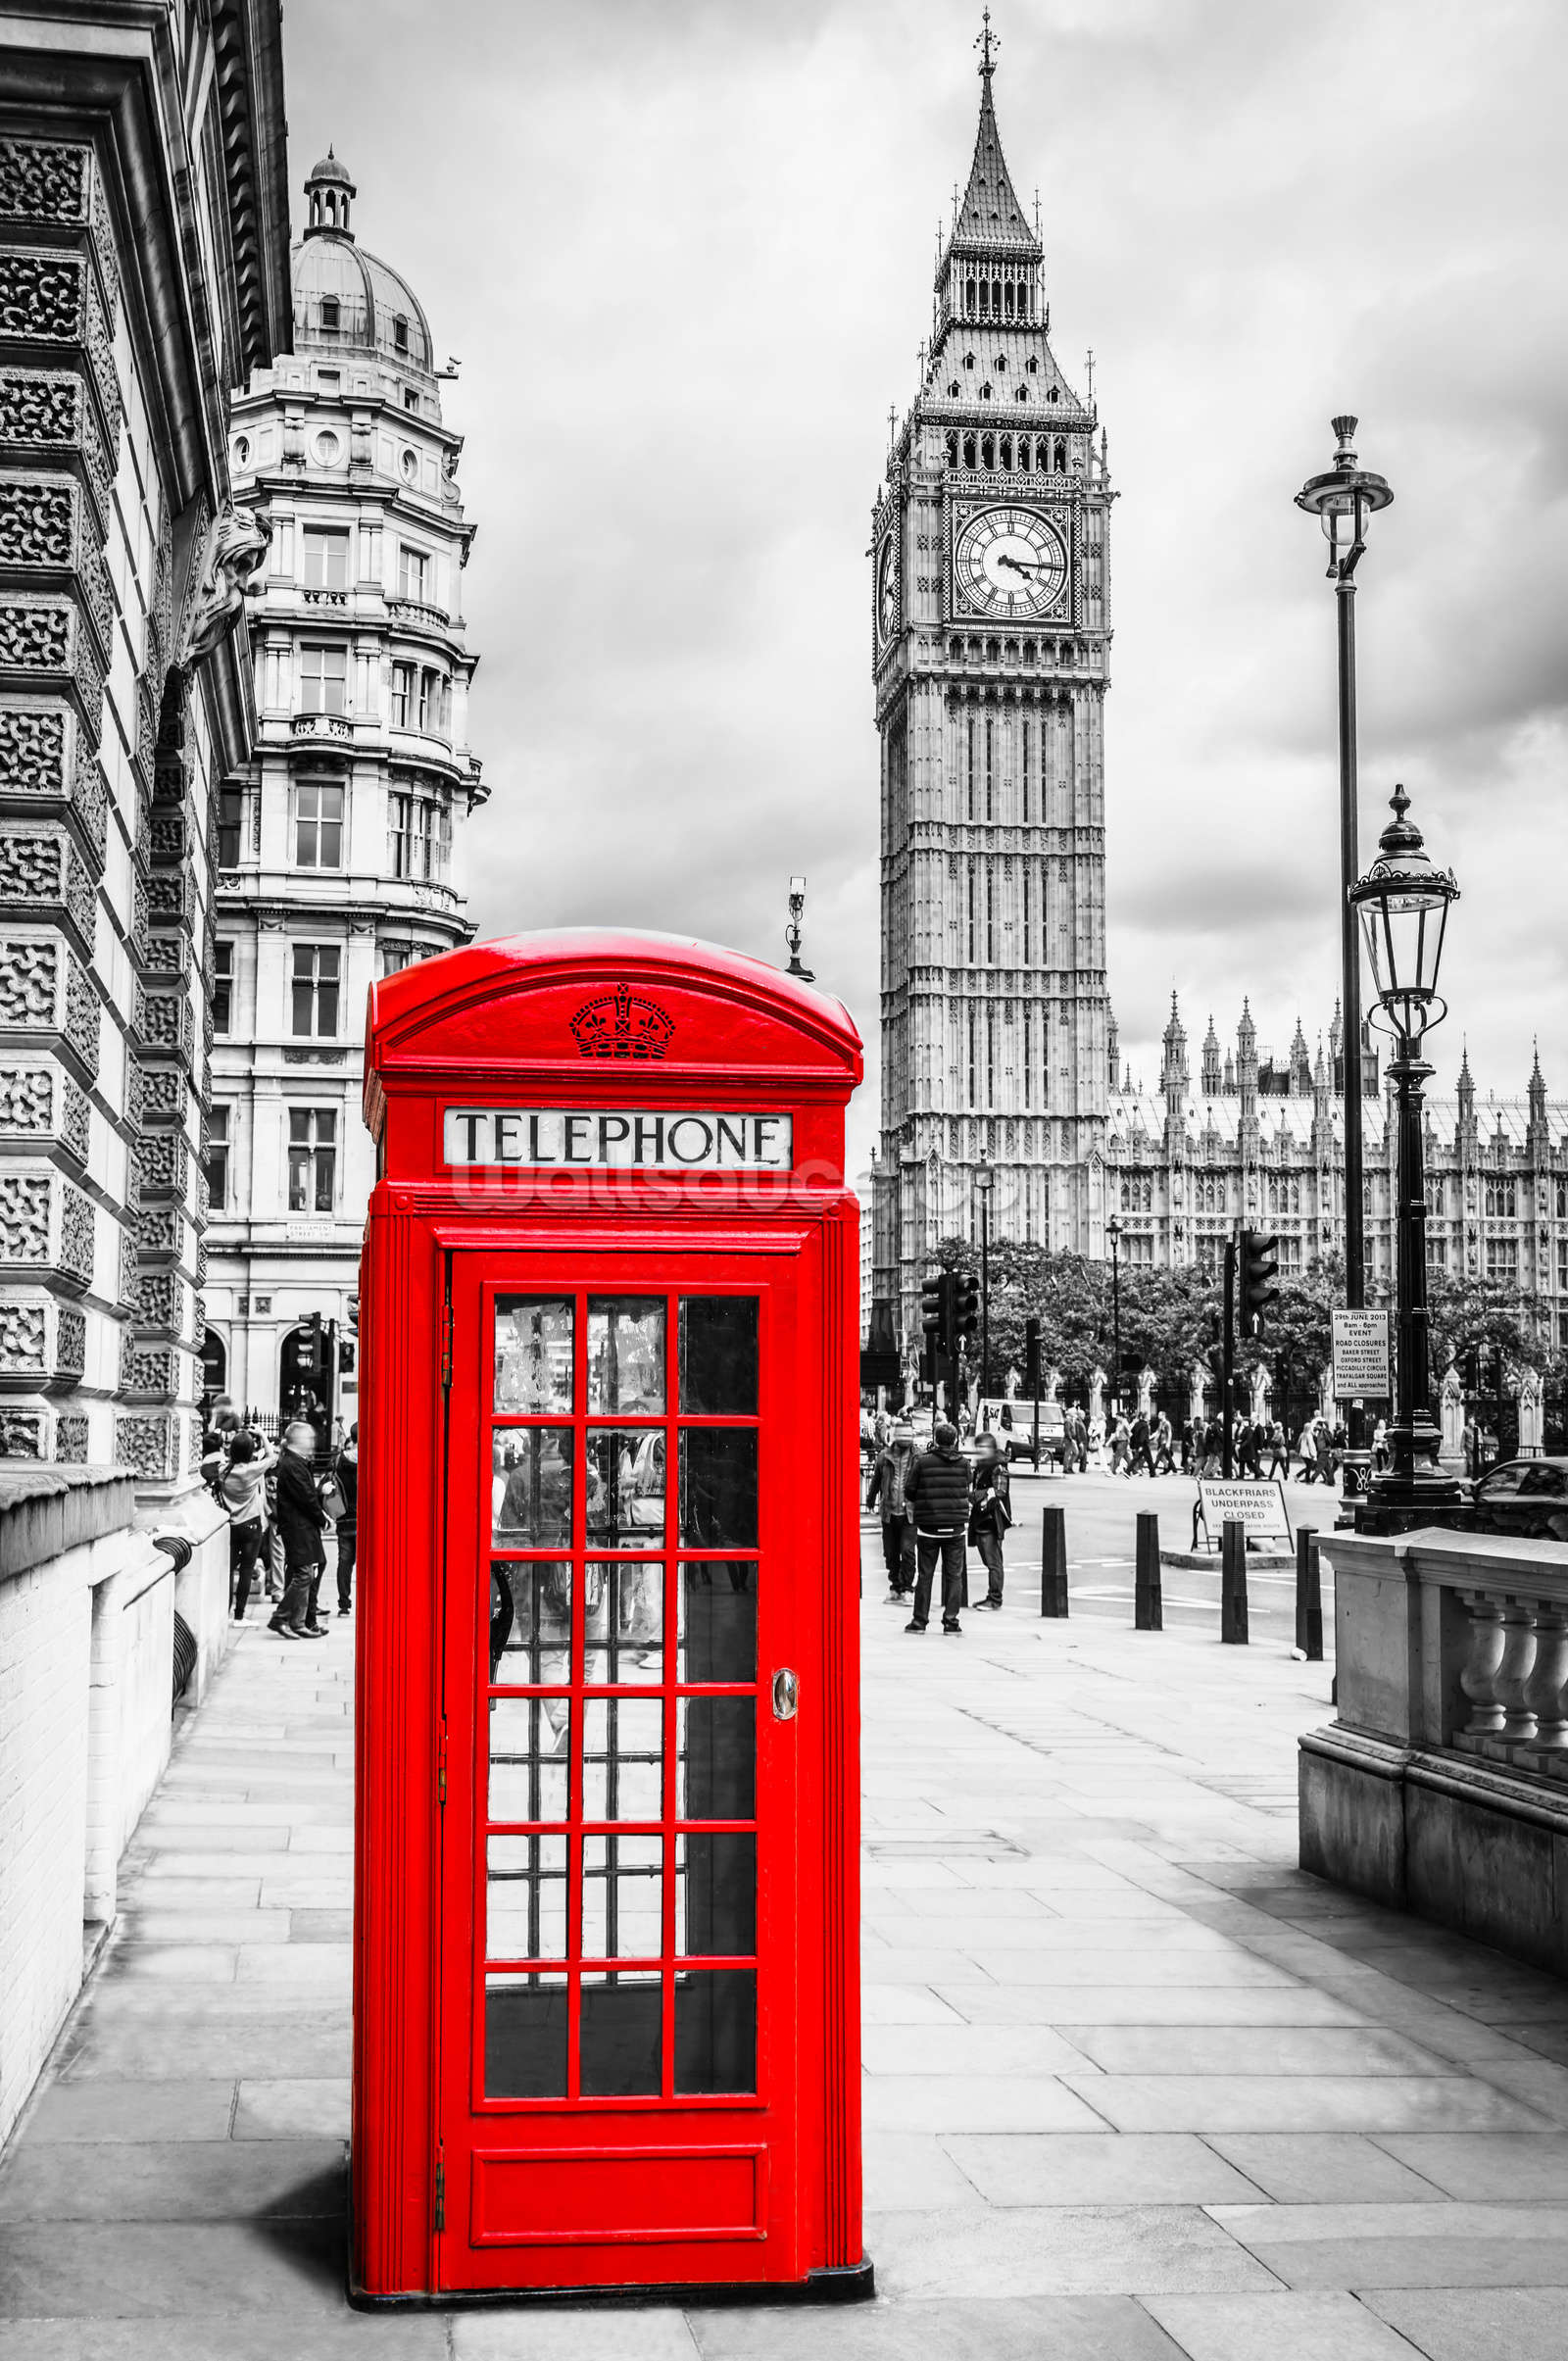 London telephone box wallpaper wall mural wallsauce new zealand london telephone box wall mural photo wallpaper amipublicfo Choice Image